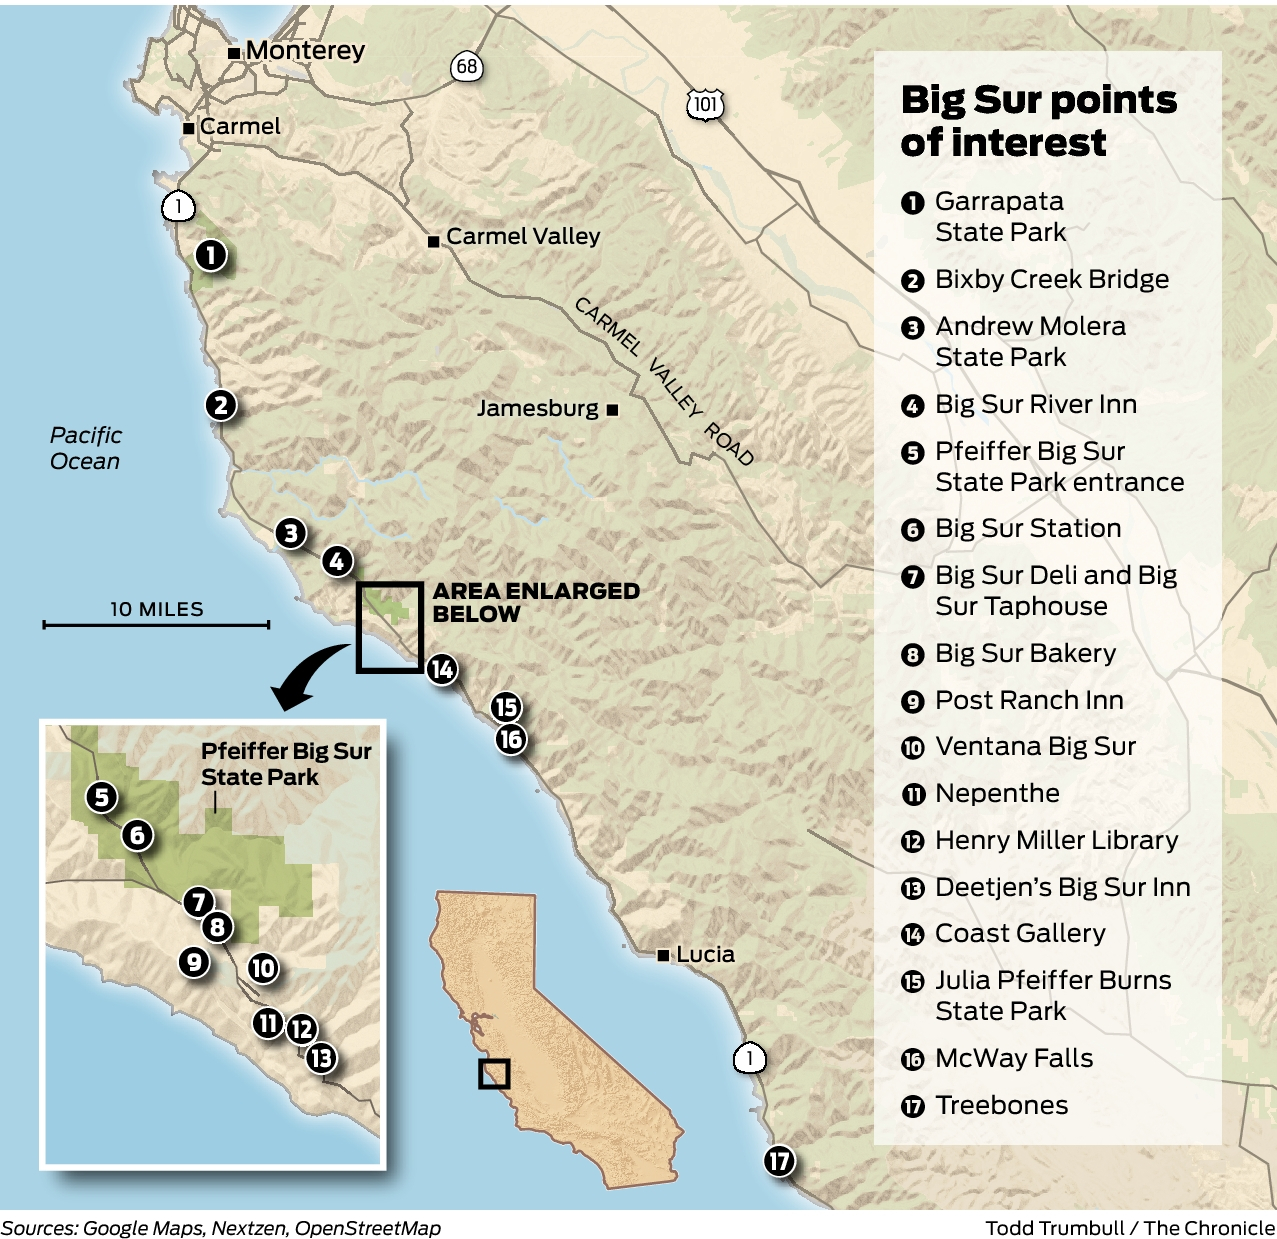 How to do Big Sur the right way - SFChronicle.com